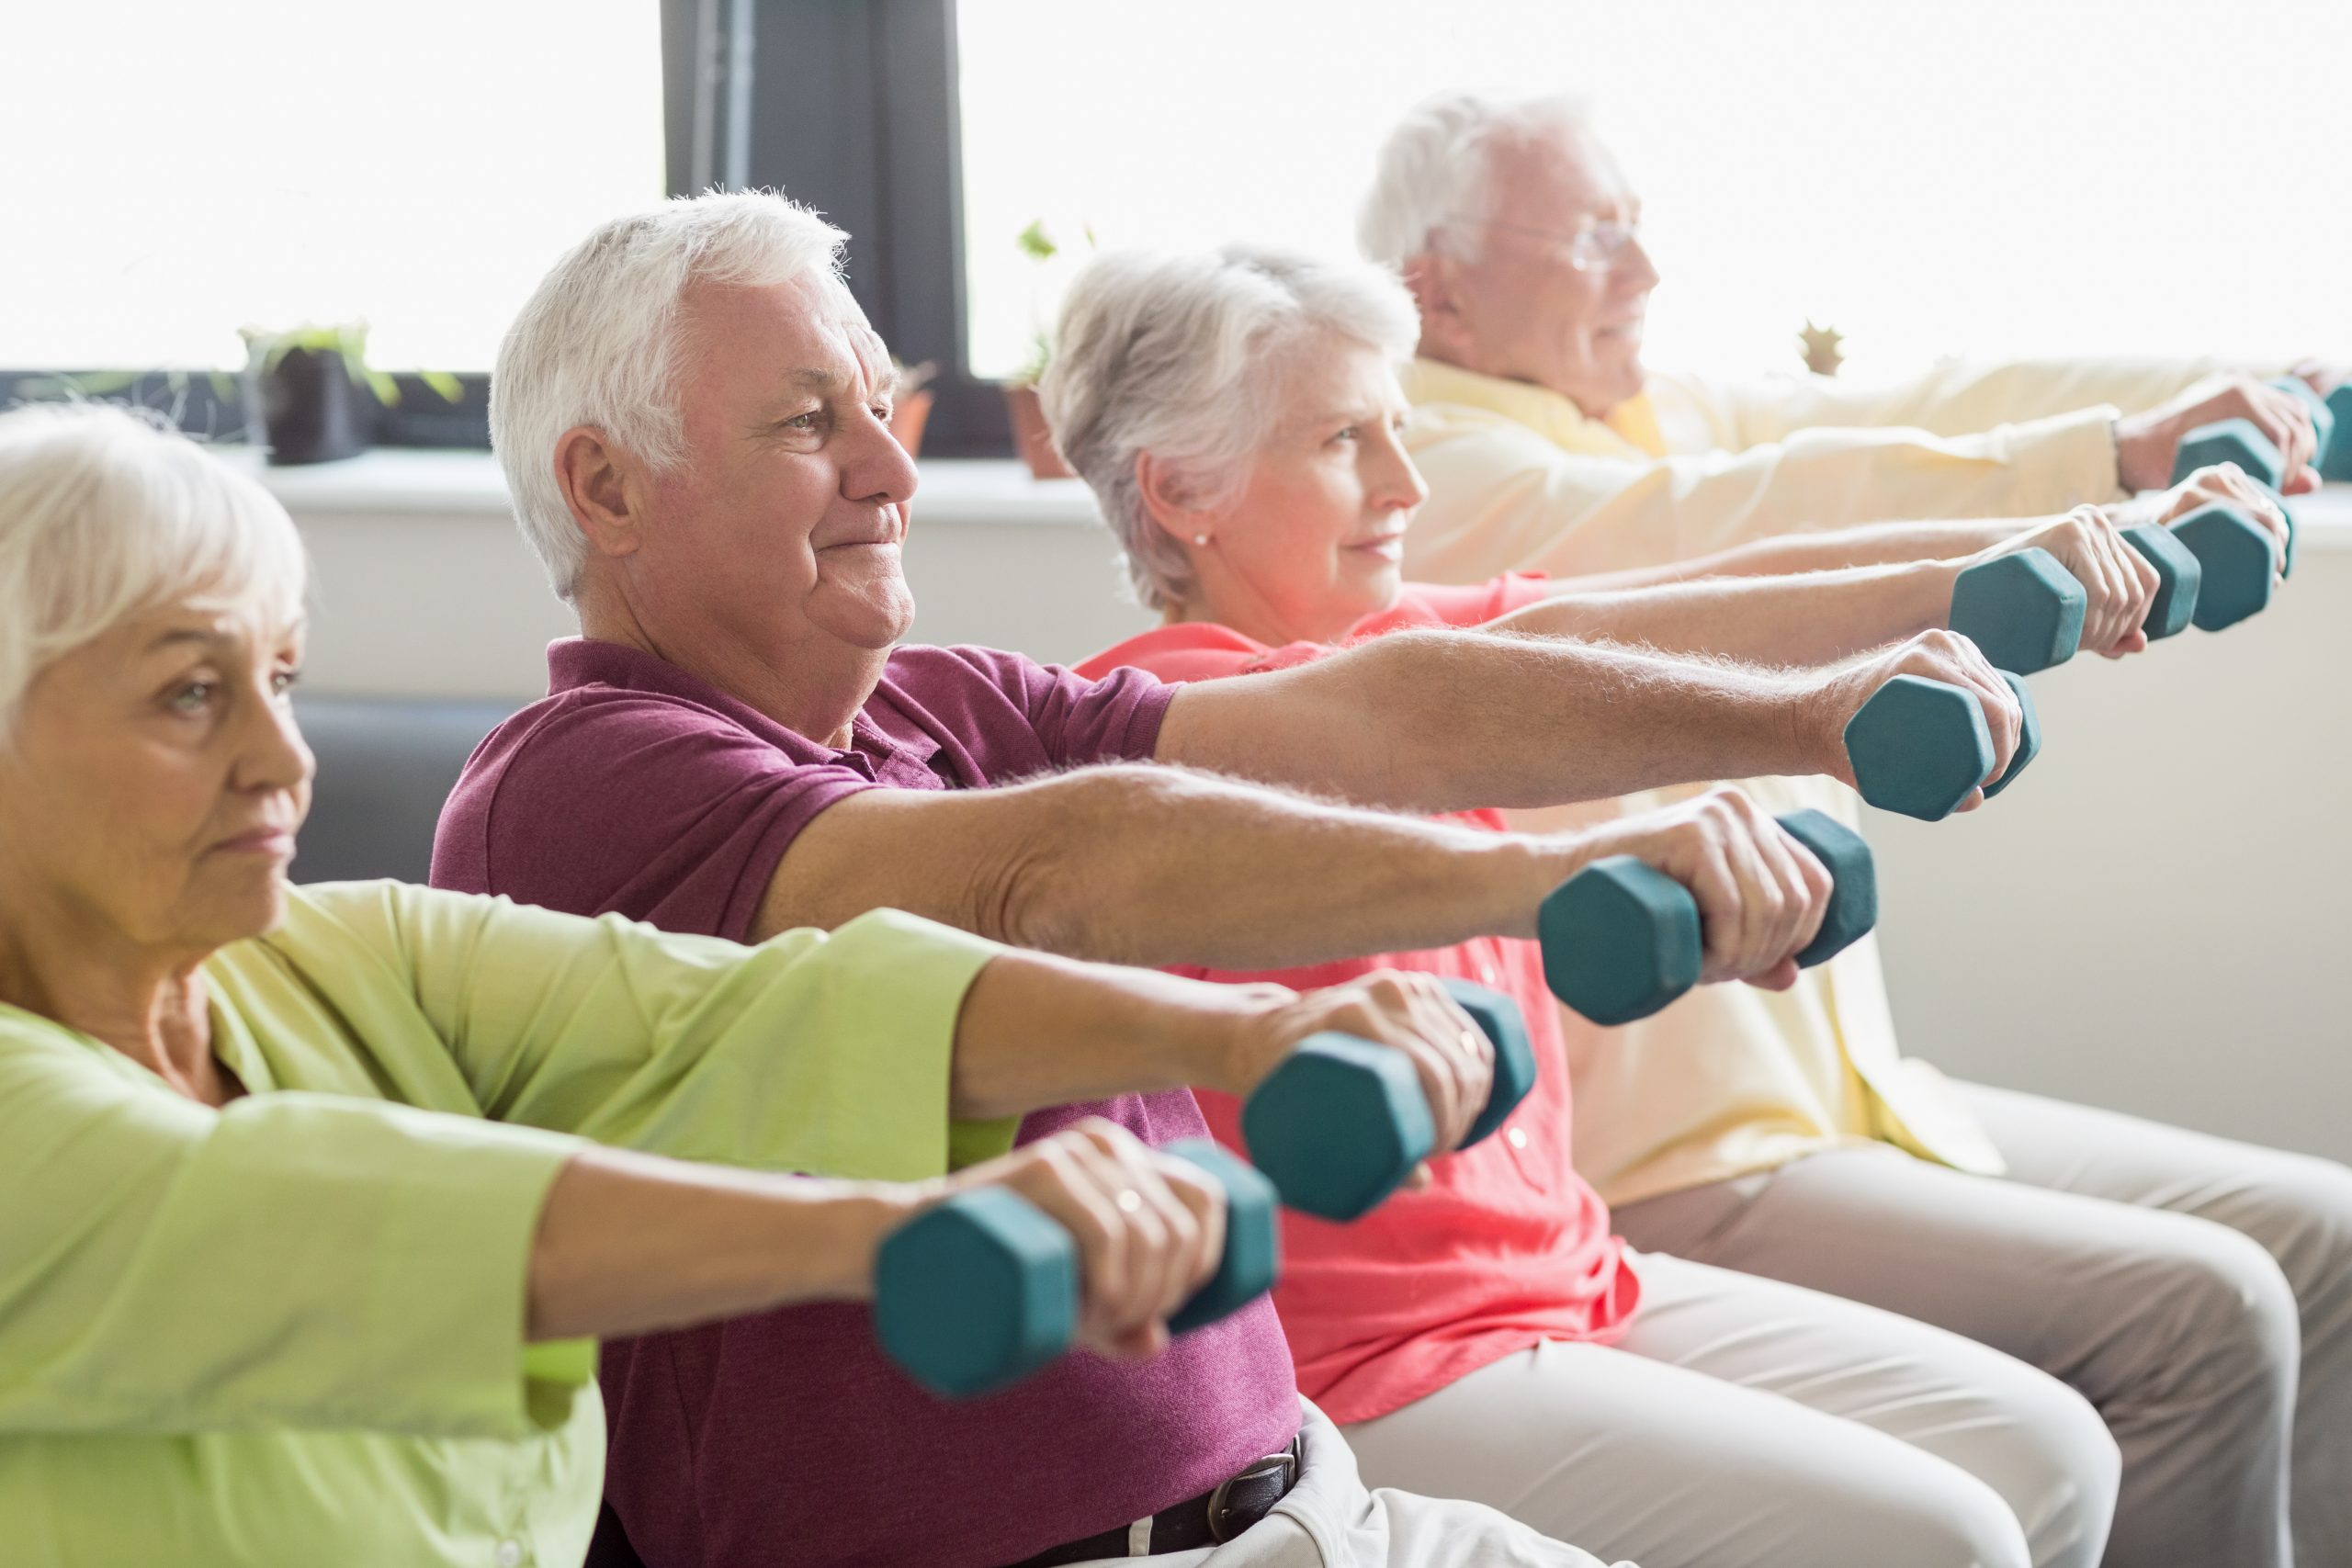 Senior Strength: 5-Minute Chair Workout to Tone Your Muscles